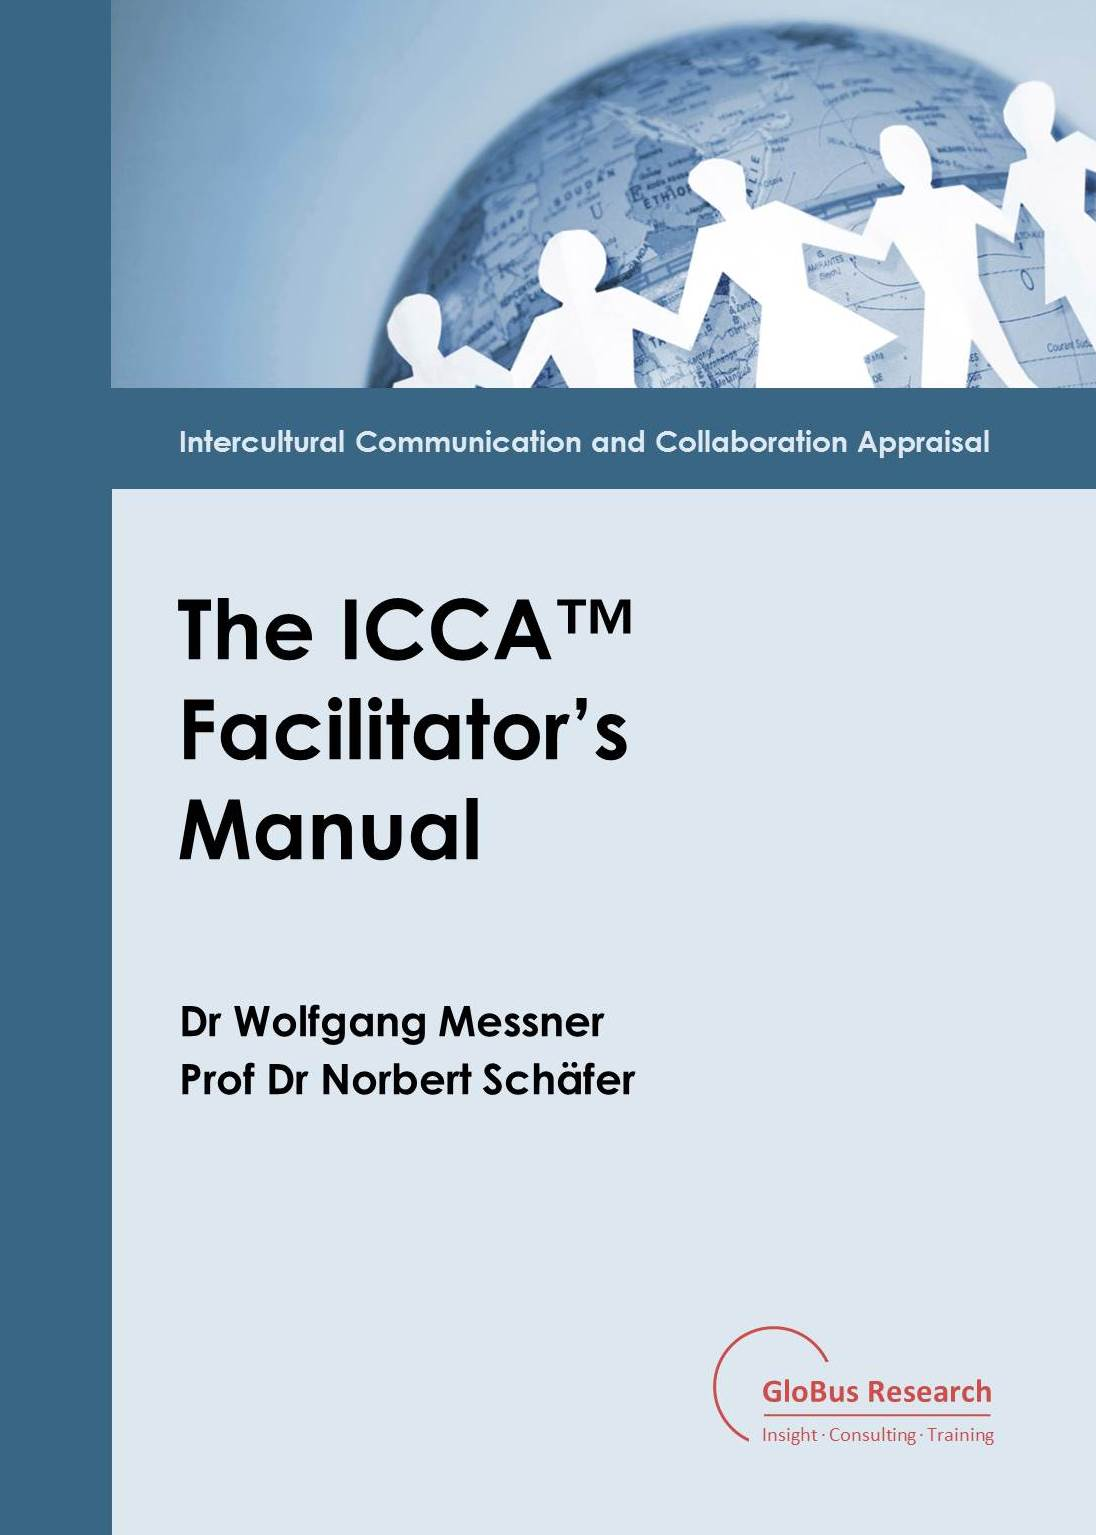 ICCA Facilitator's Manual